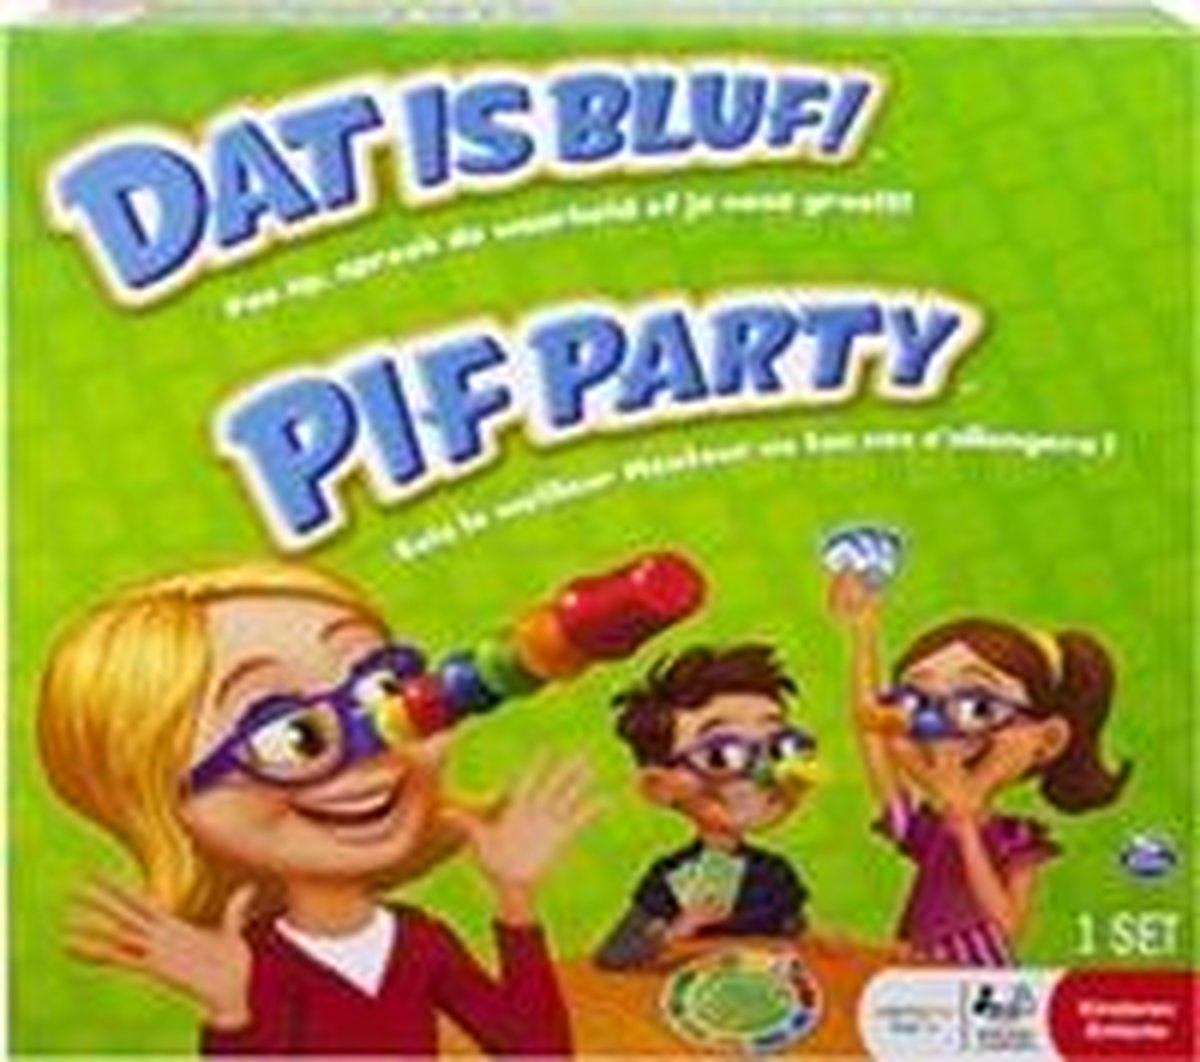 DAT IS BLUF! PIF PARTY